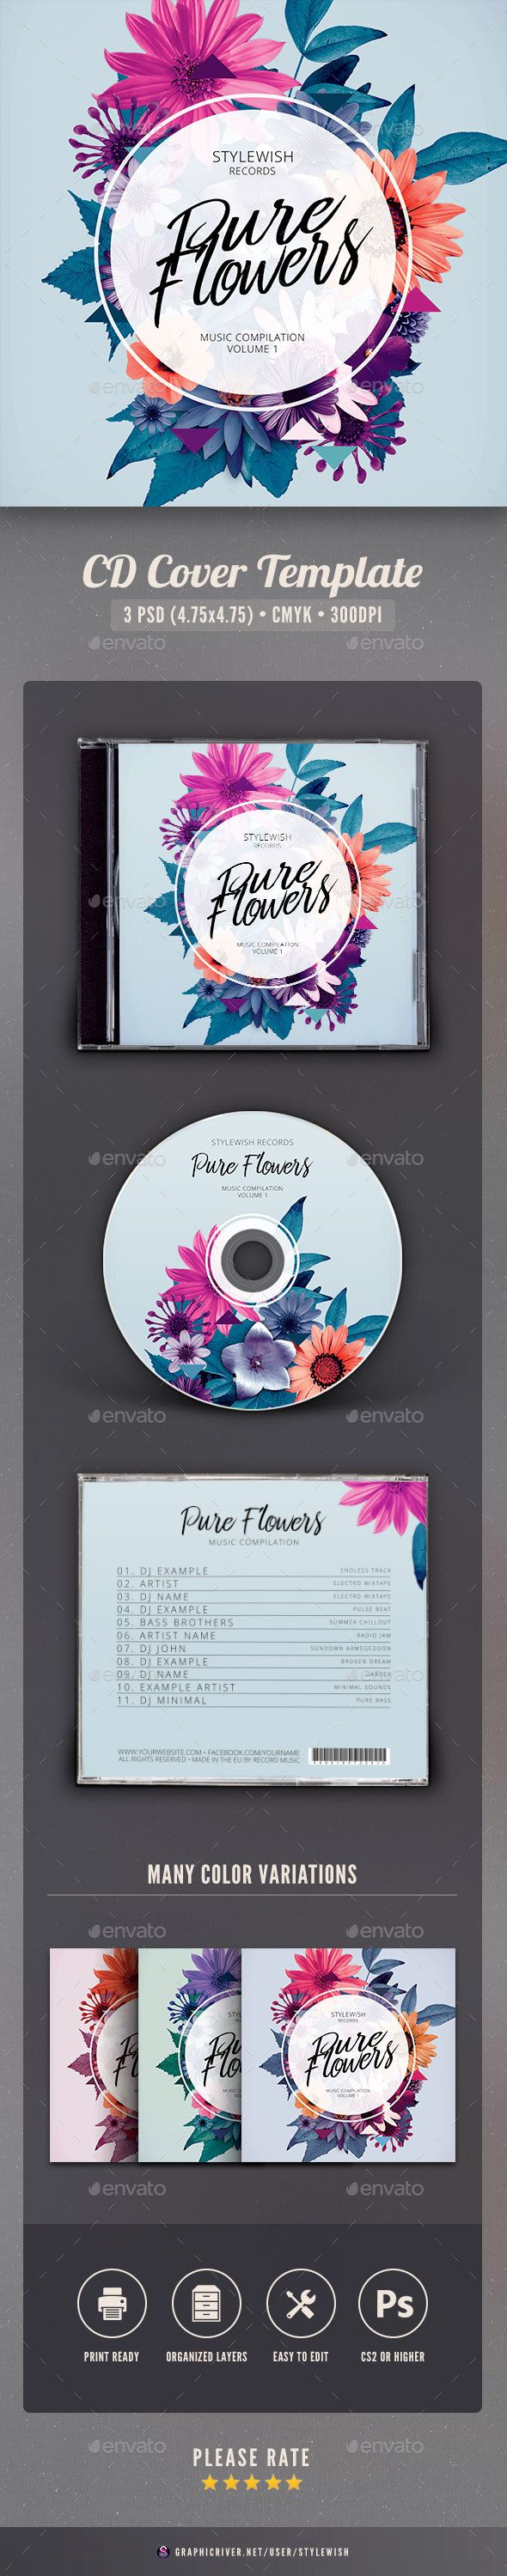 Pure Flowers CD Cover Artwork — Photoshop PSD #nature #leaf • Download ➝ https://graphicriver.net/item/pure-flowers-cd-cover-artwork/20116763?ref=pxcr